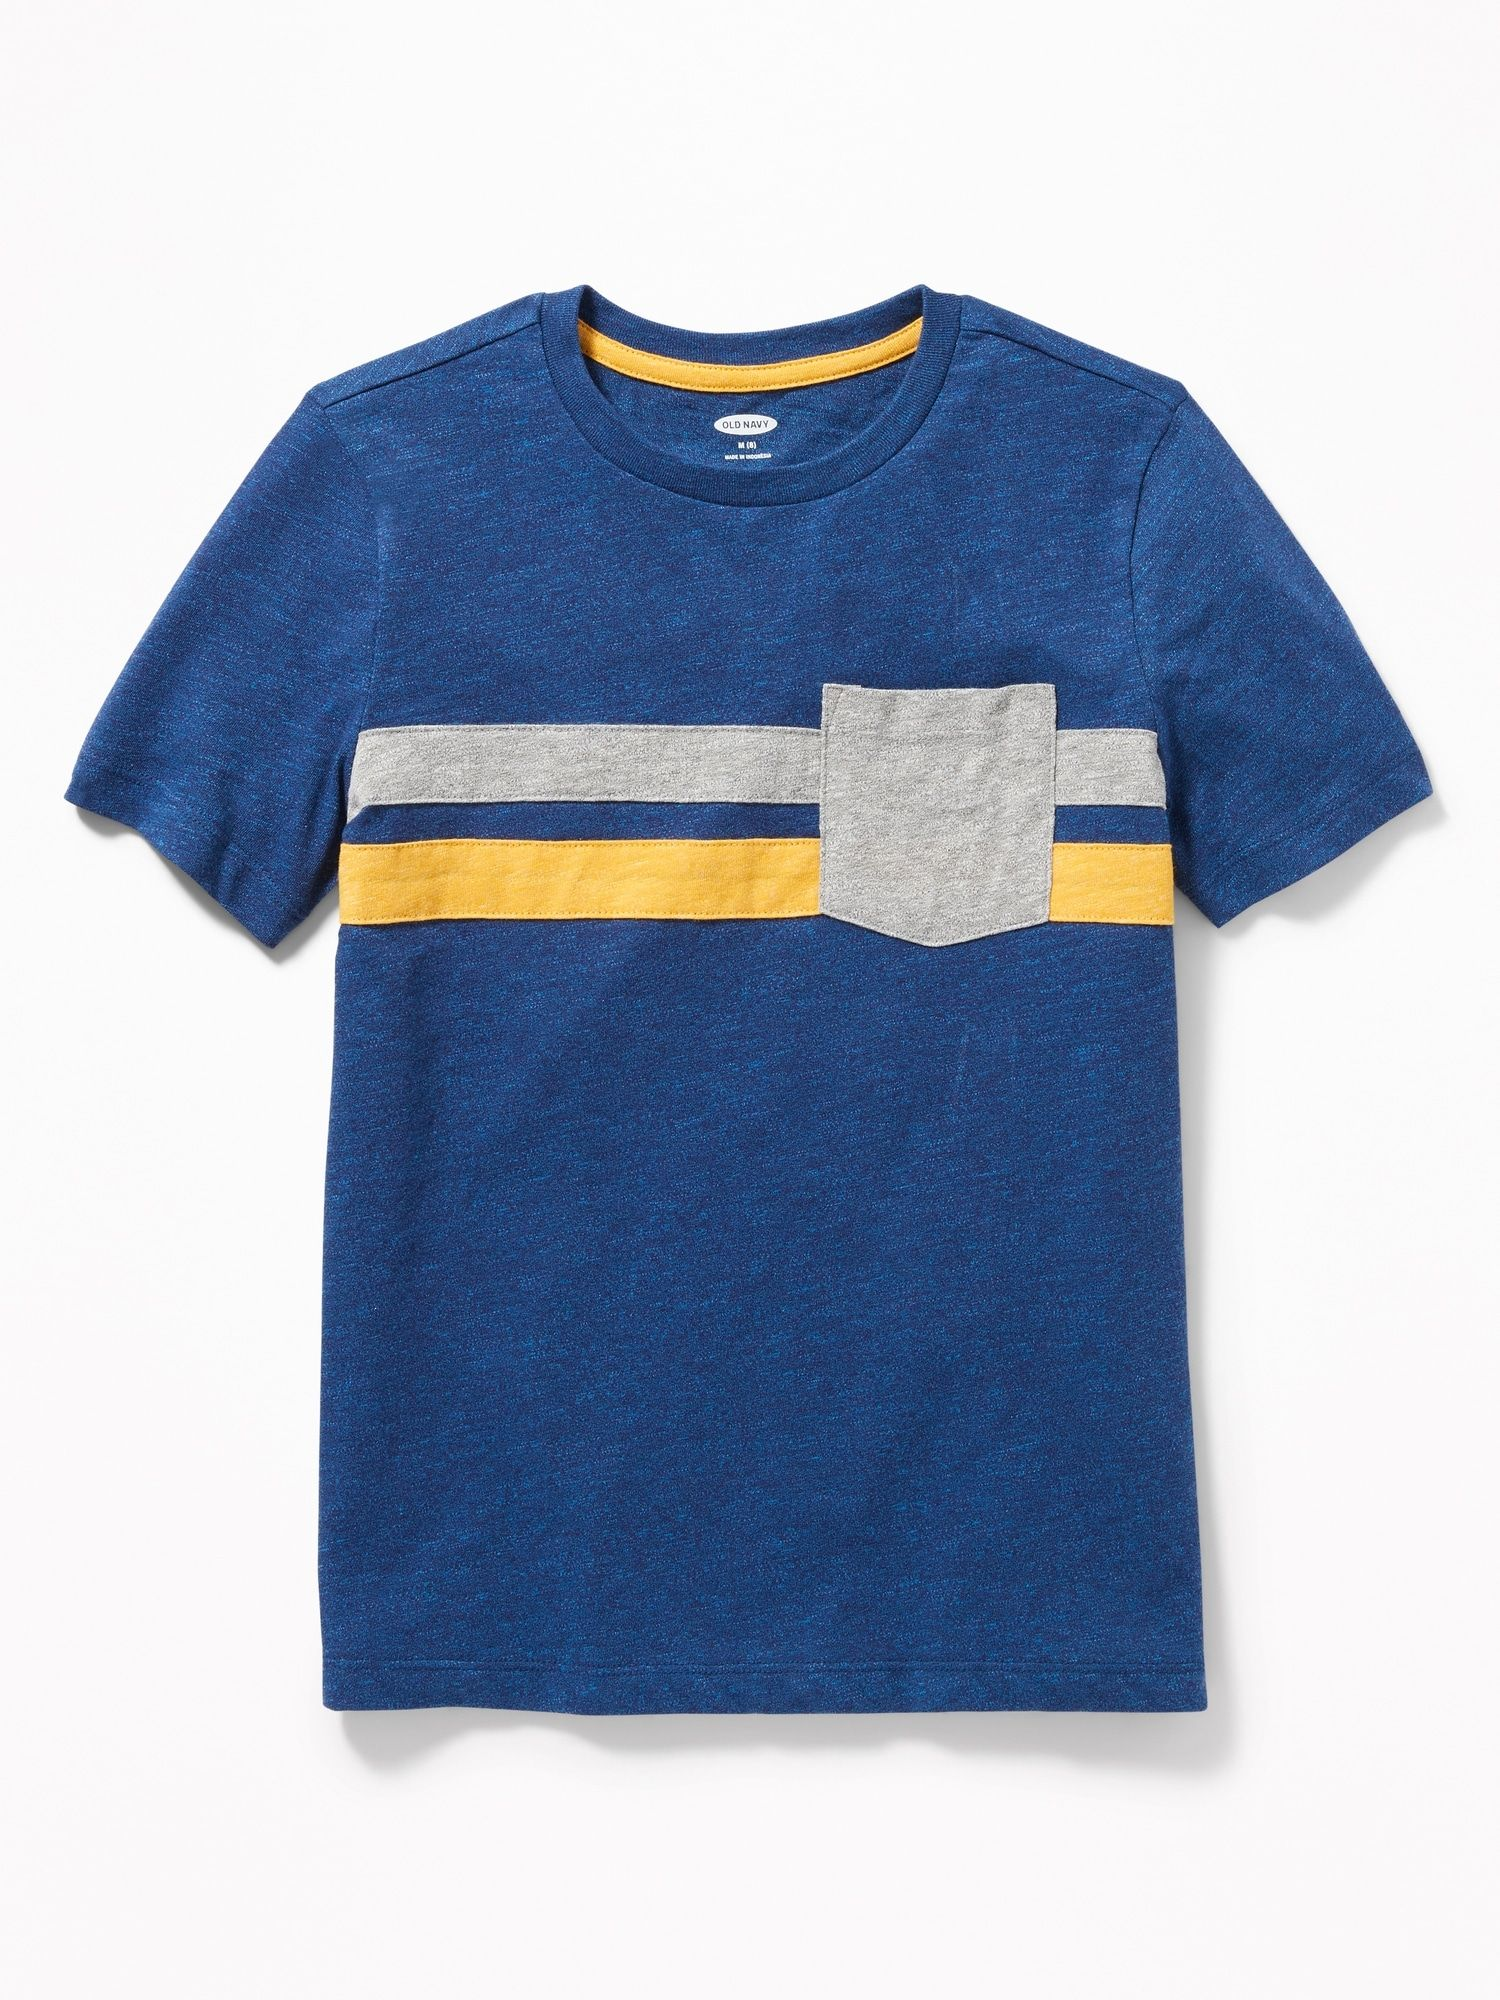 Color Blocked Chest Stripe Pocket Tee For Boys Old Navy Boys T Shirts Old Navy Boys